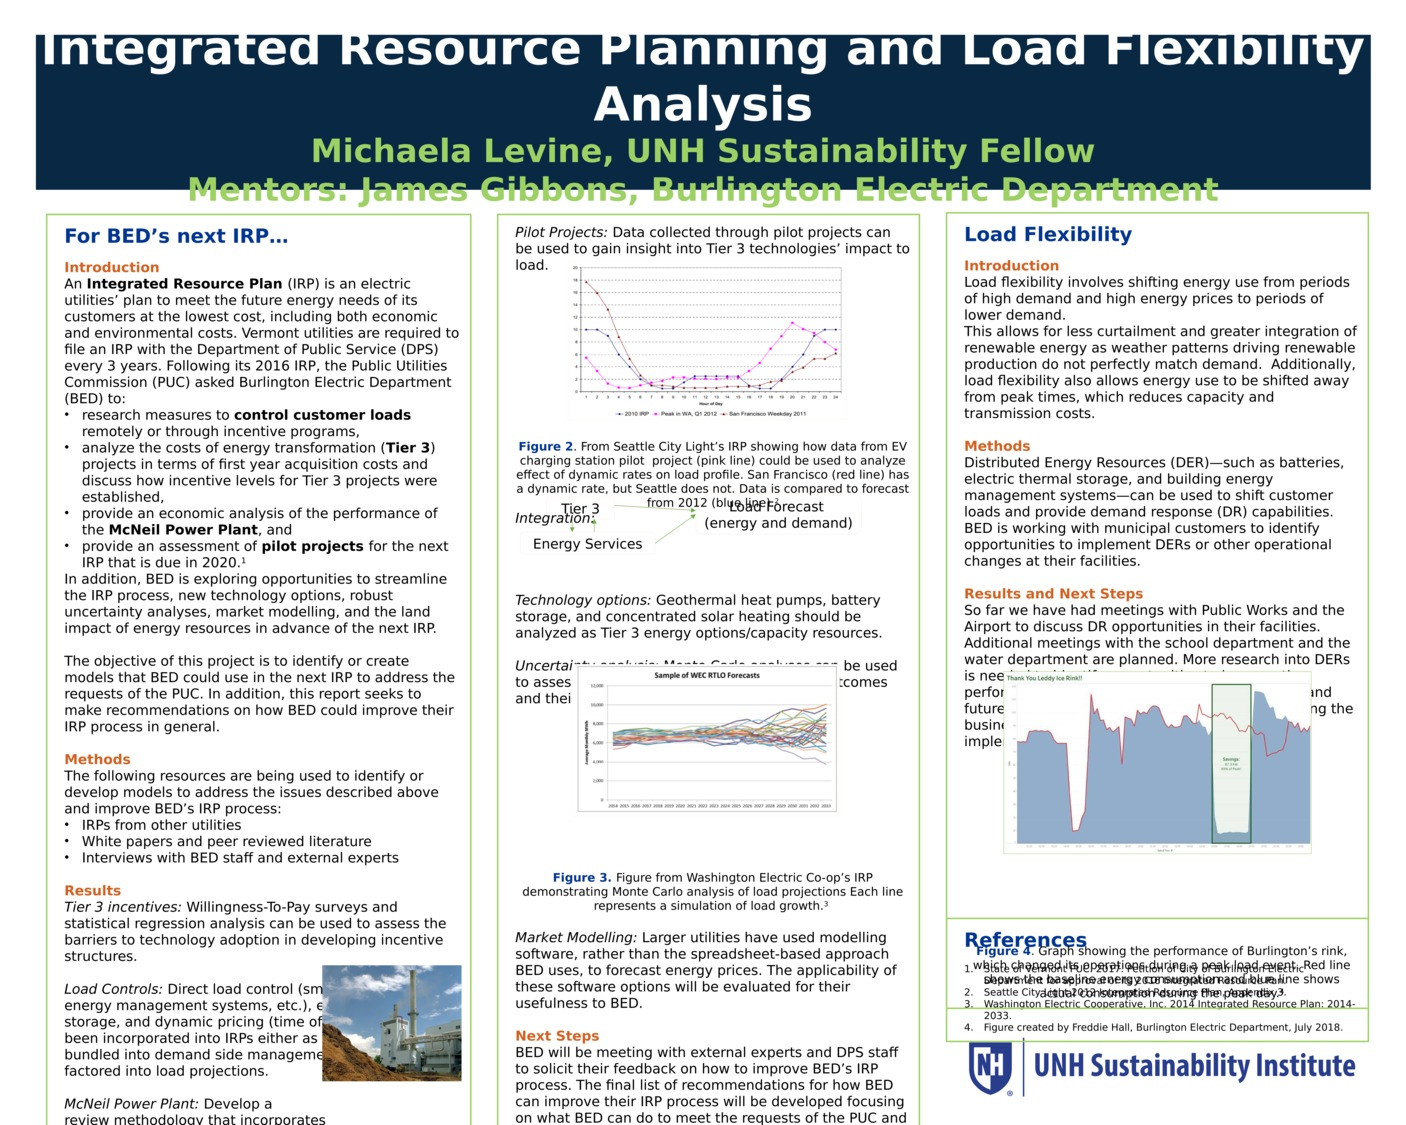 Resource Planning And Load Flexibility Analysis by mlevine